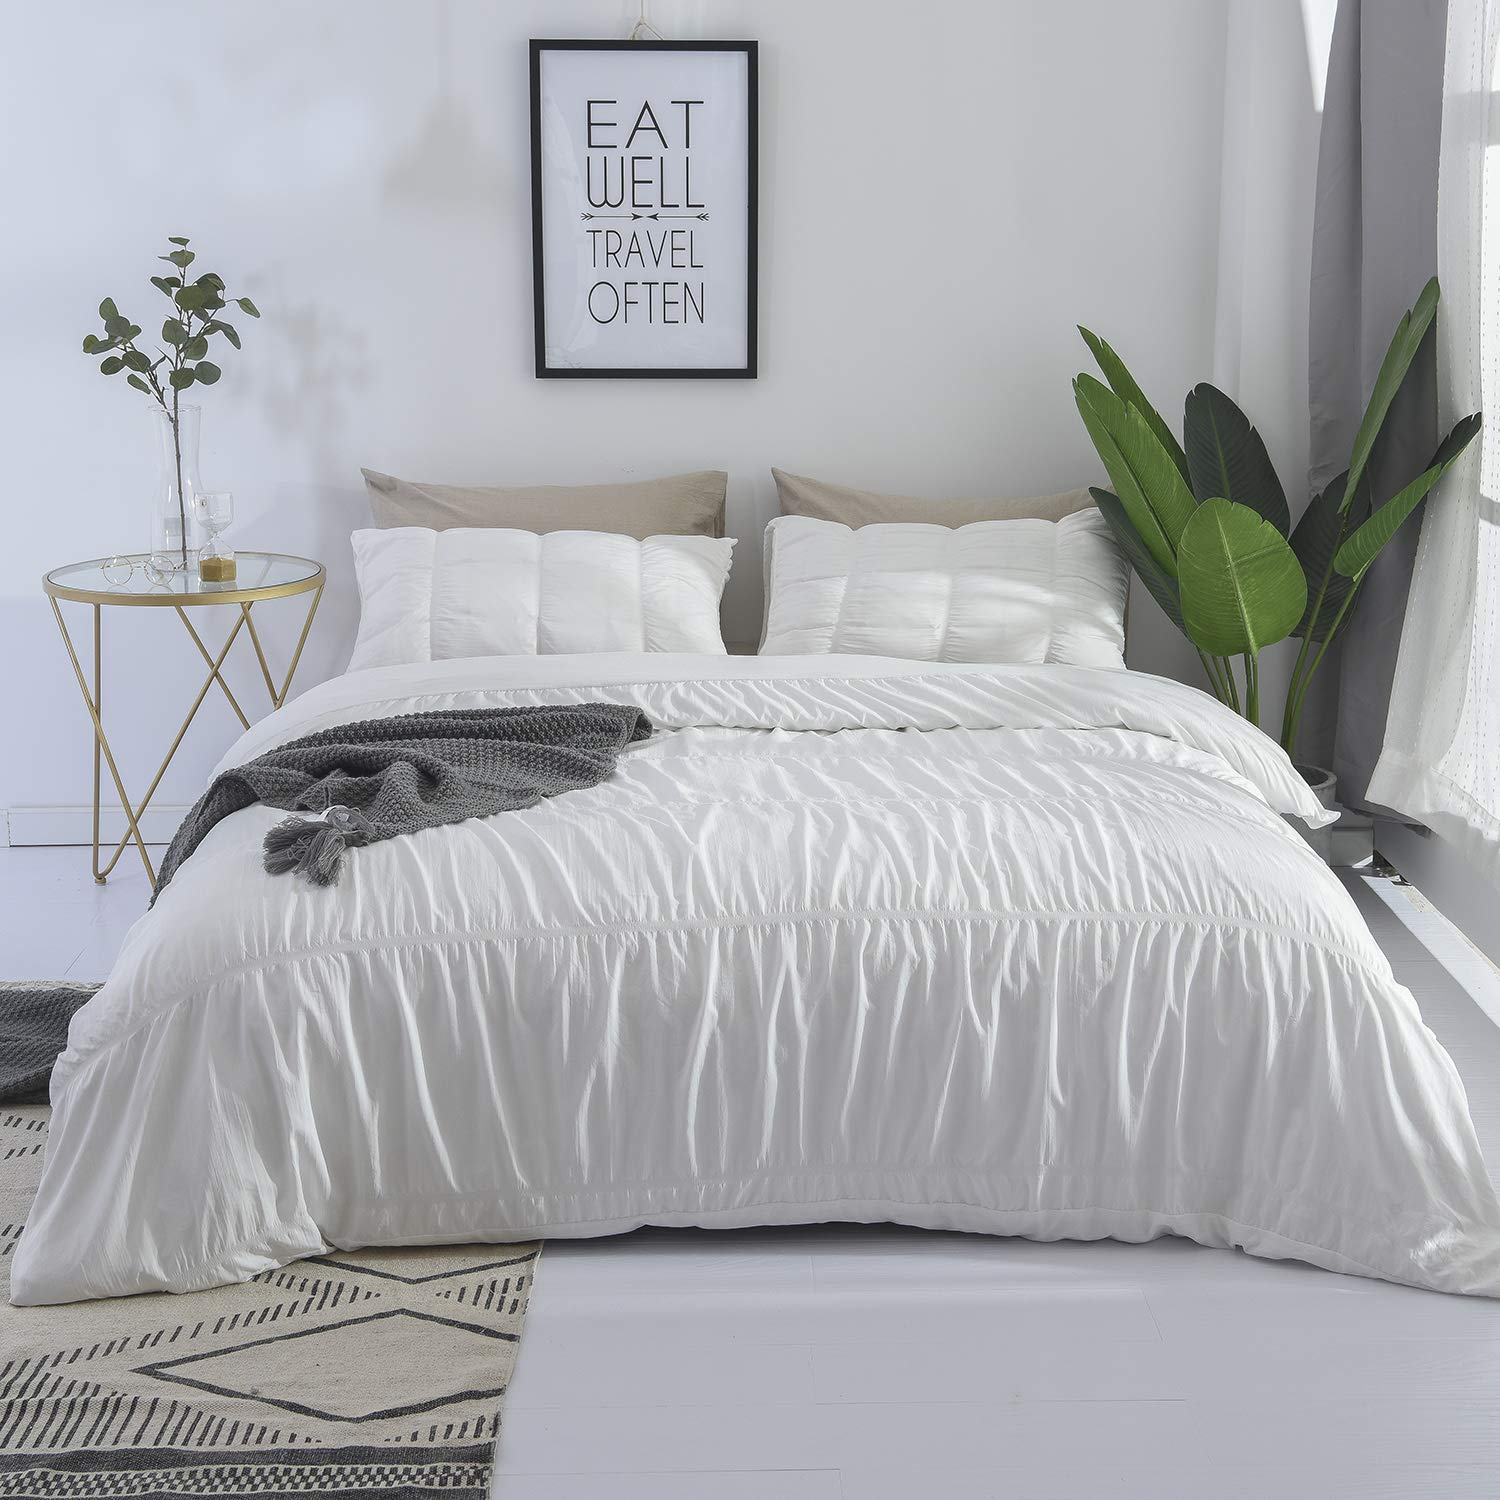 DuShow White Queen Duvet Cover Set Solid 3 Pieces Stripe Hotel Quality Comforter Cover Set with Zipper Closure Soft Hypoallergenic One Seersucker Duvet Cover and 2 Pillow Sharms